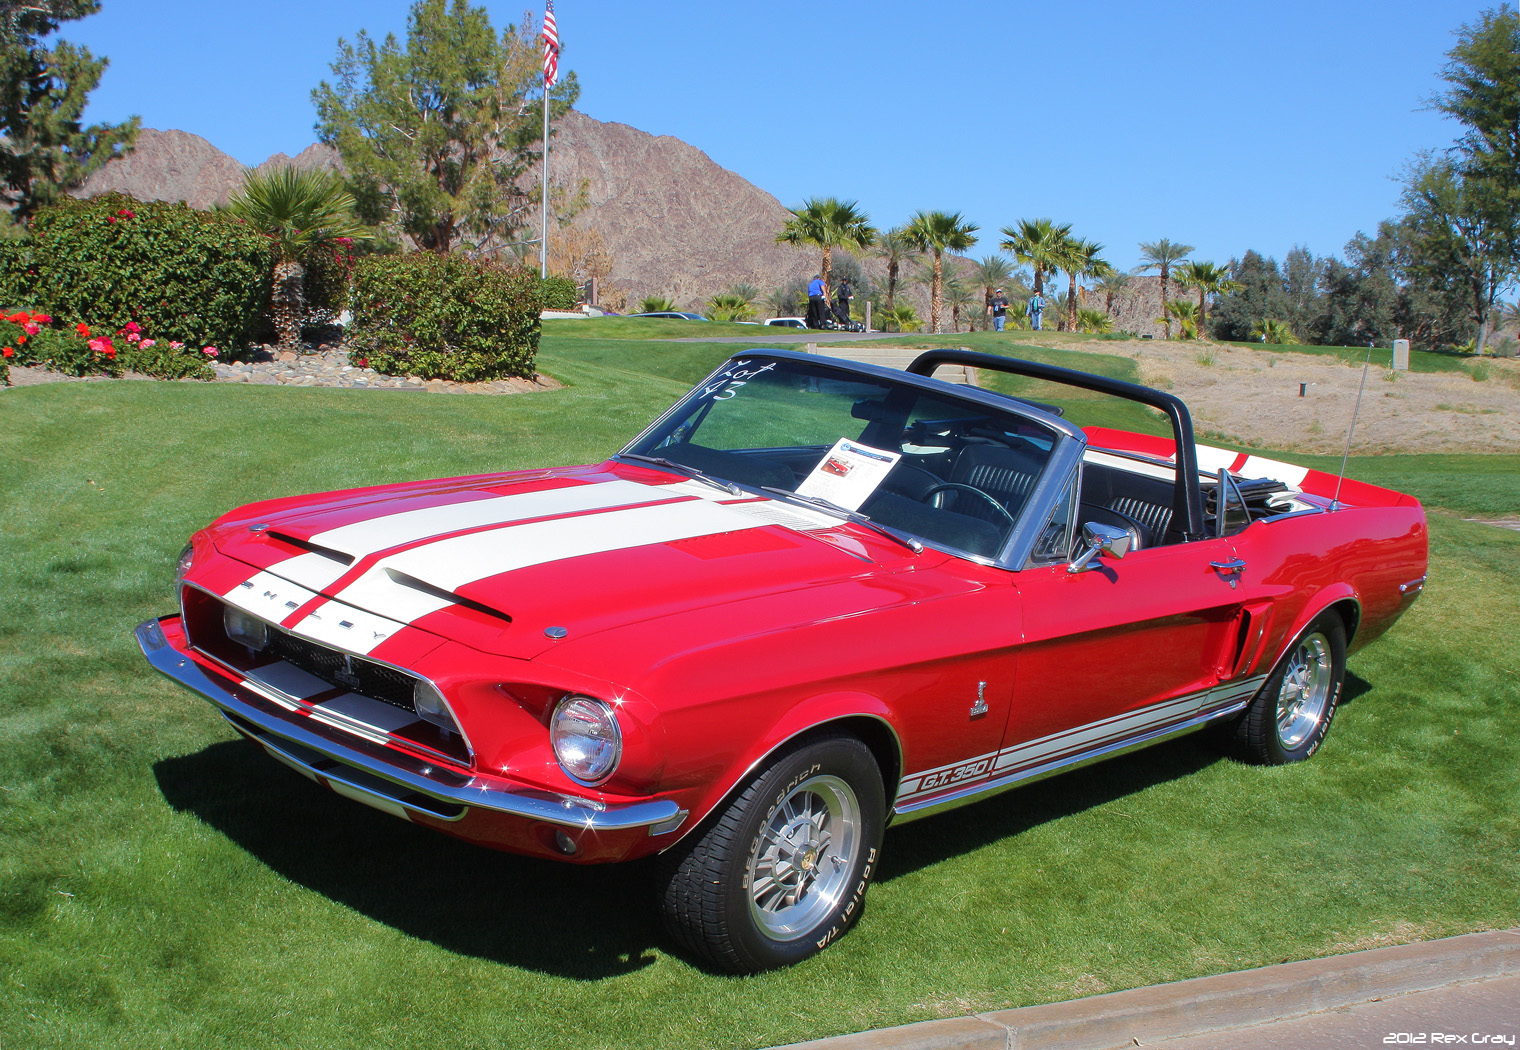 Original Mustang Shelby >> File:1968 Ford Shelby GT350 Convertible - fvl.jpg ...